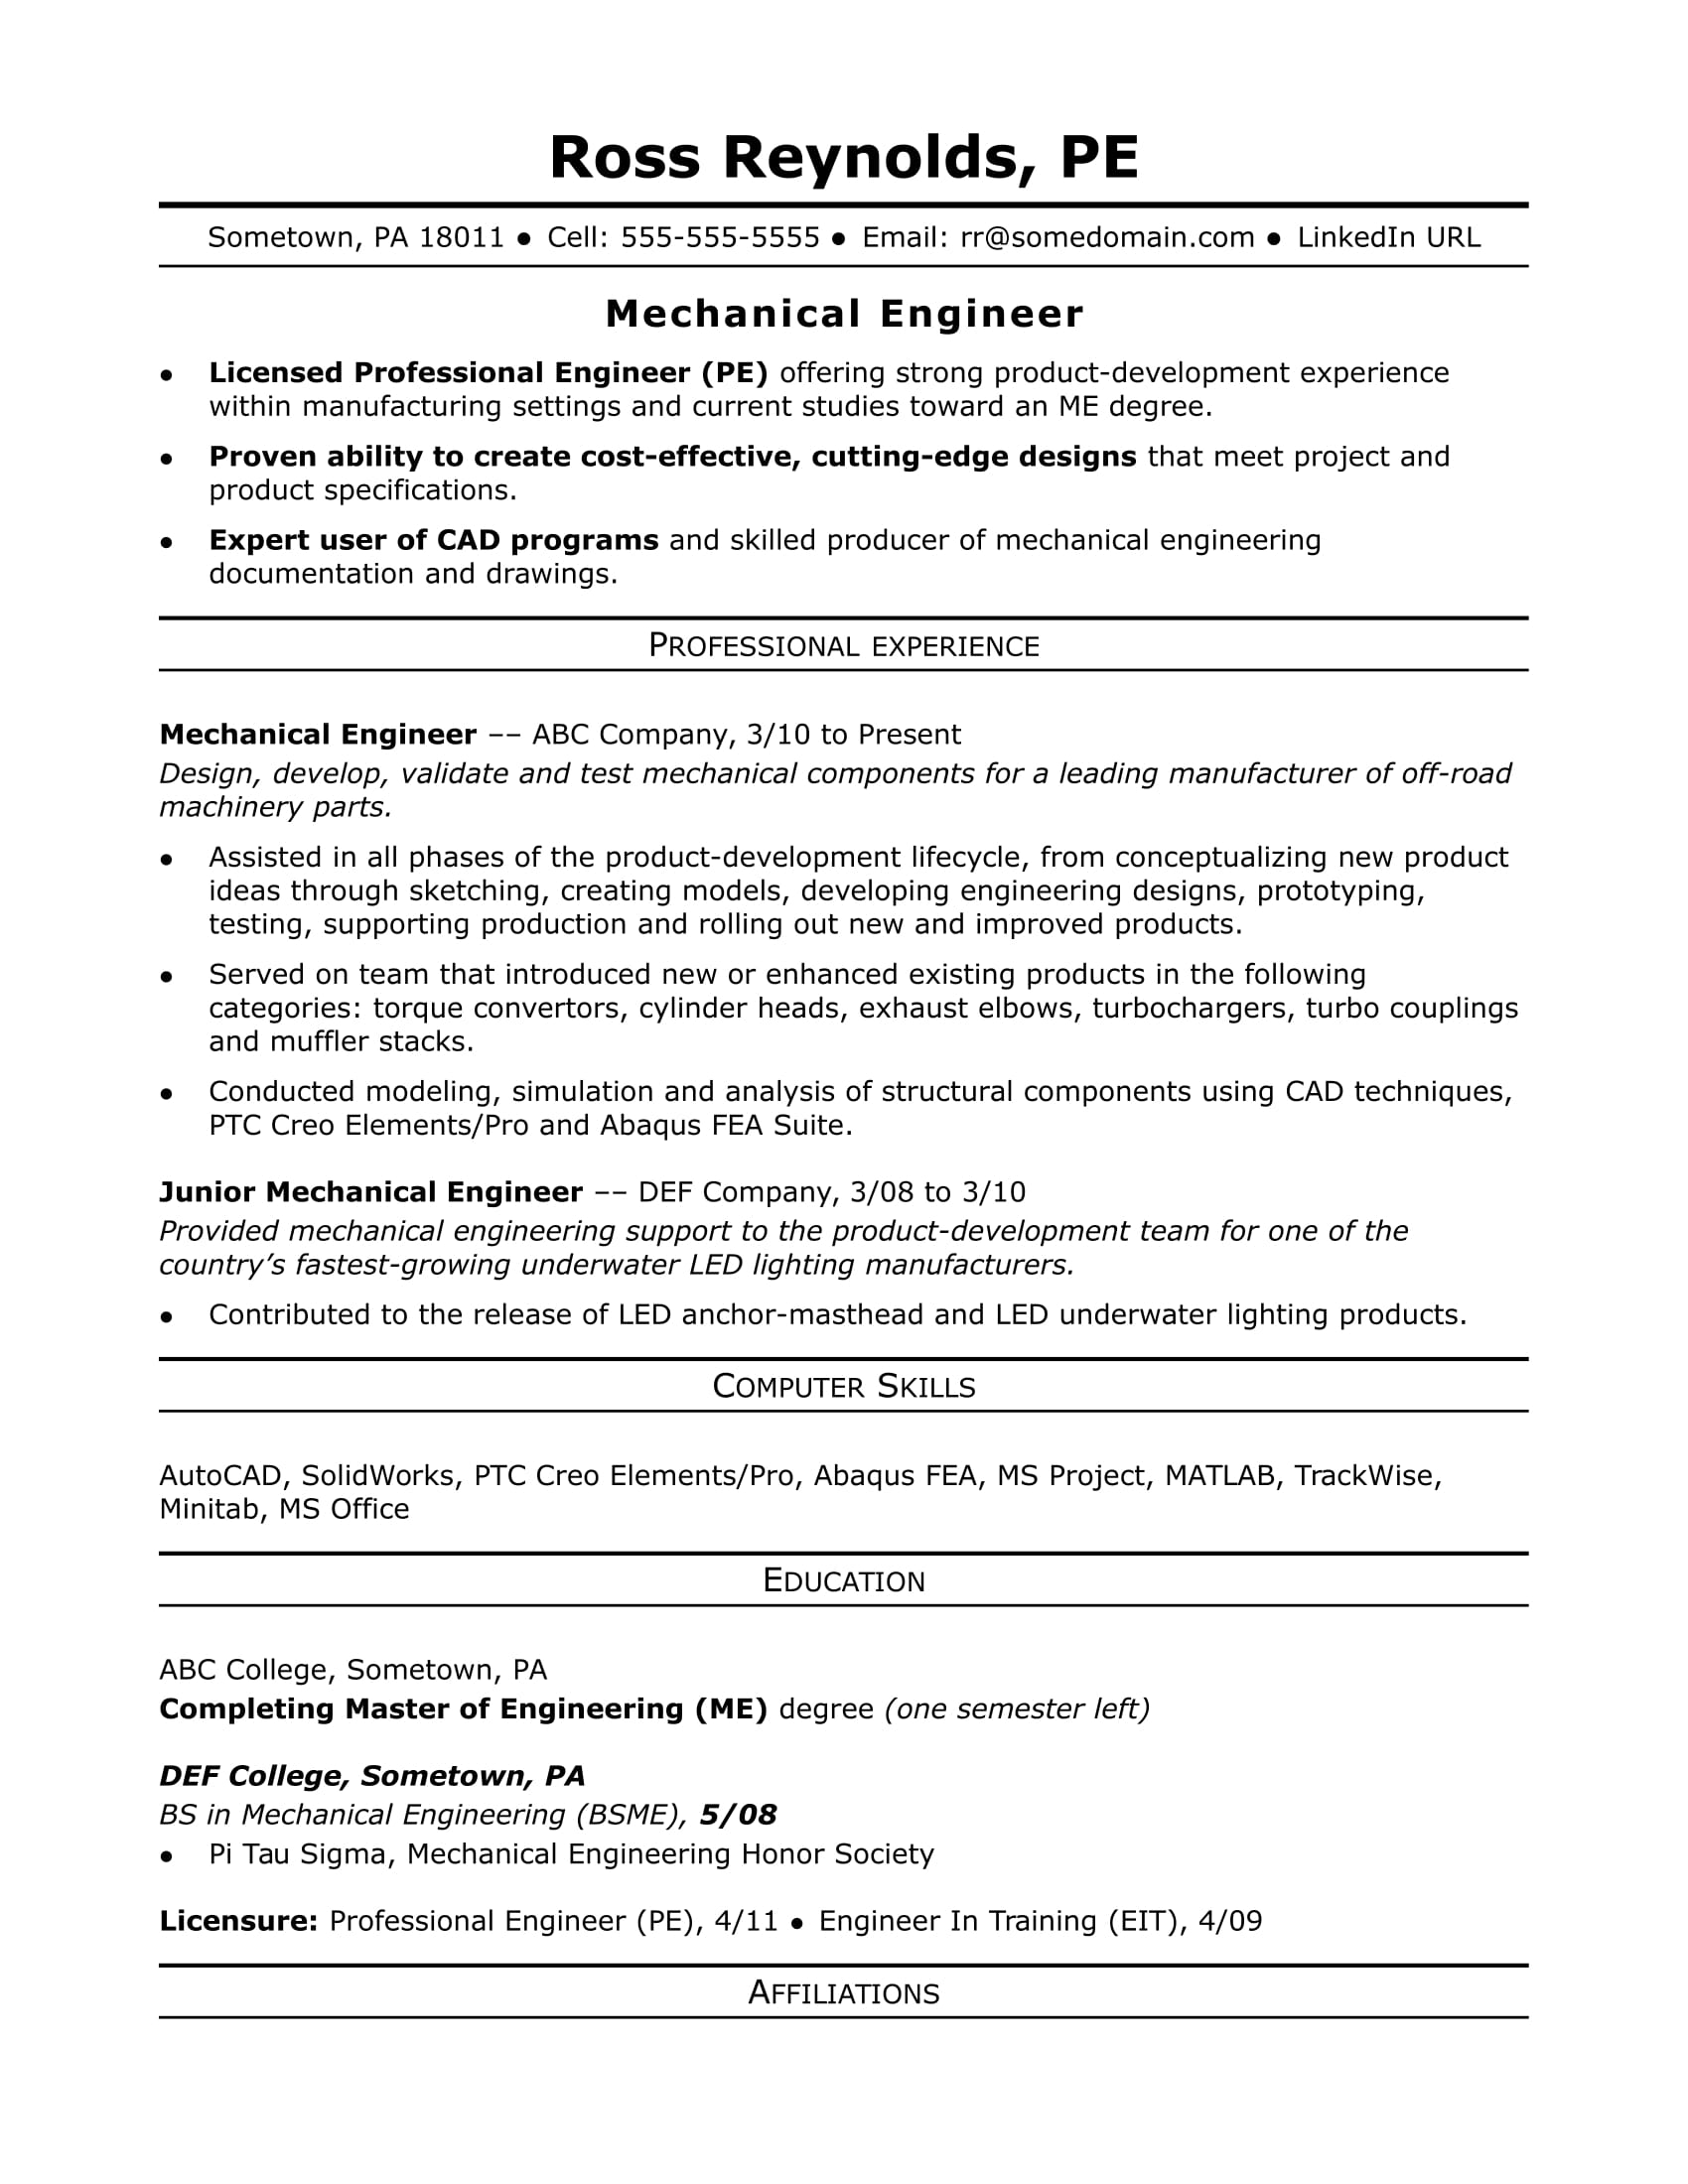 resume Engineer Resume Template sample resume for a midlevel mechanical engineer monster com engineer